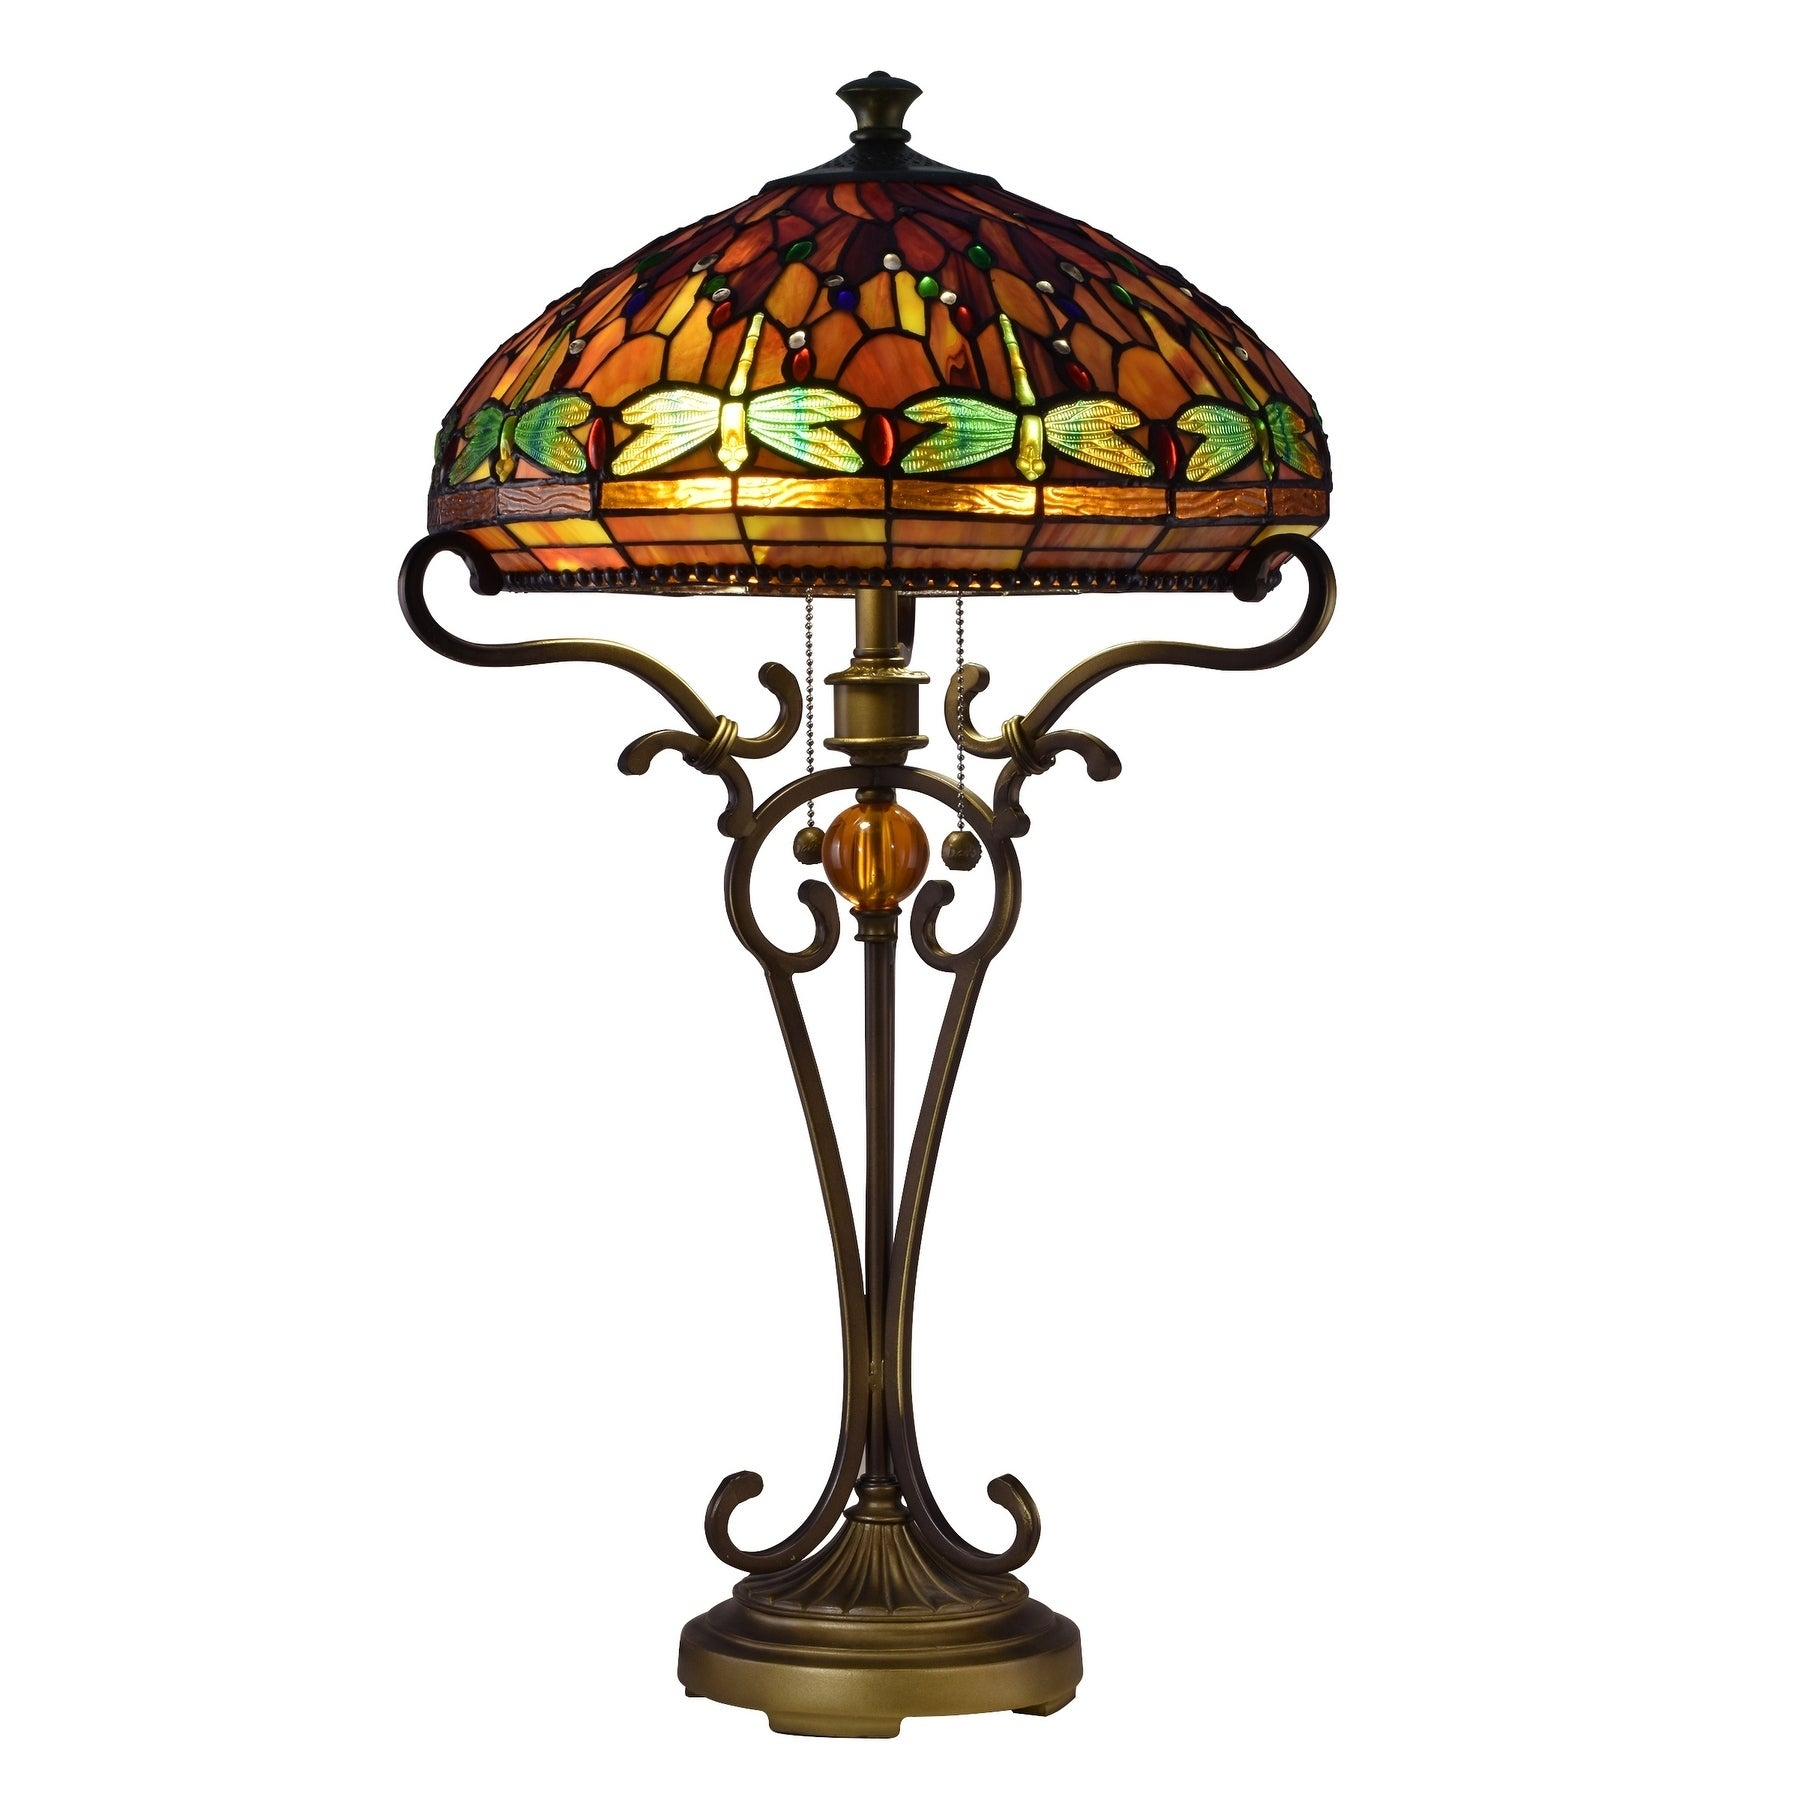 Briar Dragonfly Tiffany Table Lamp